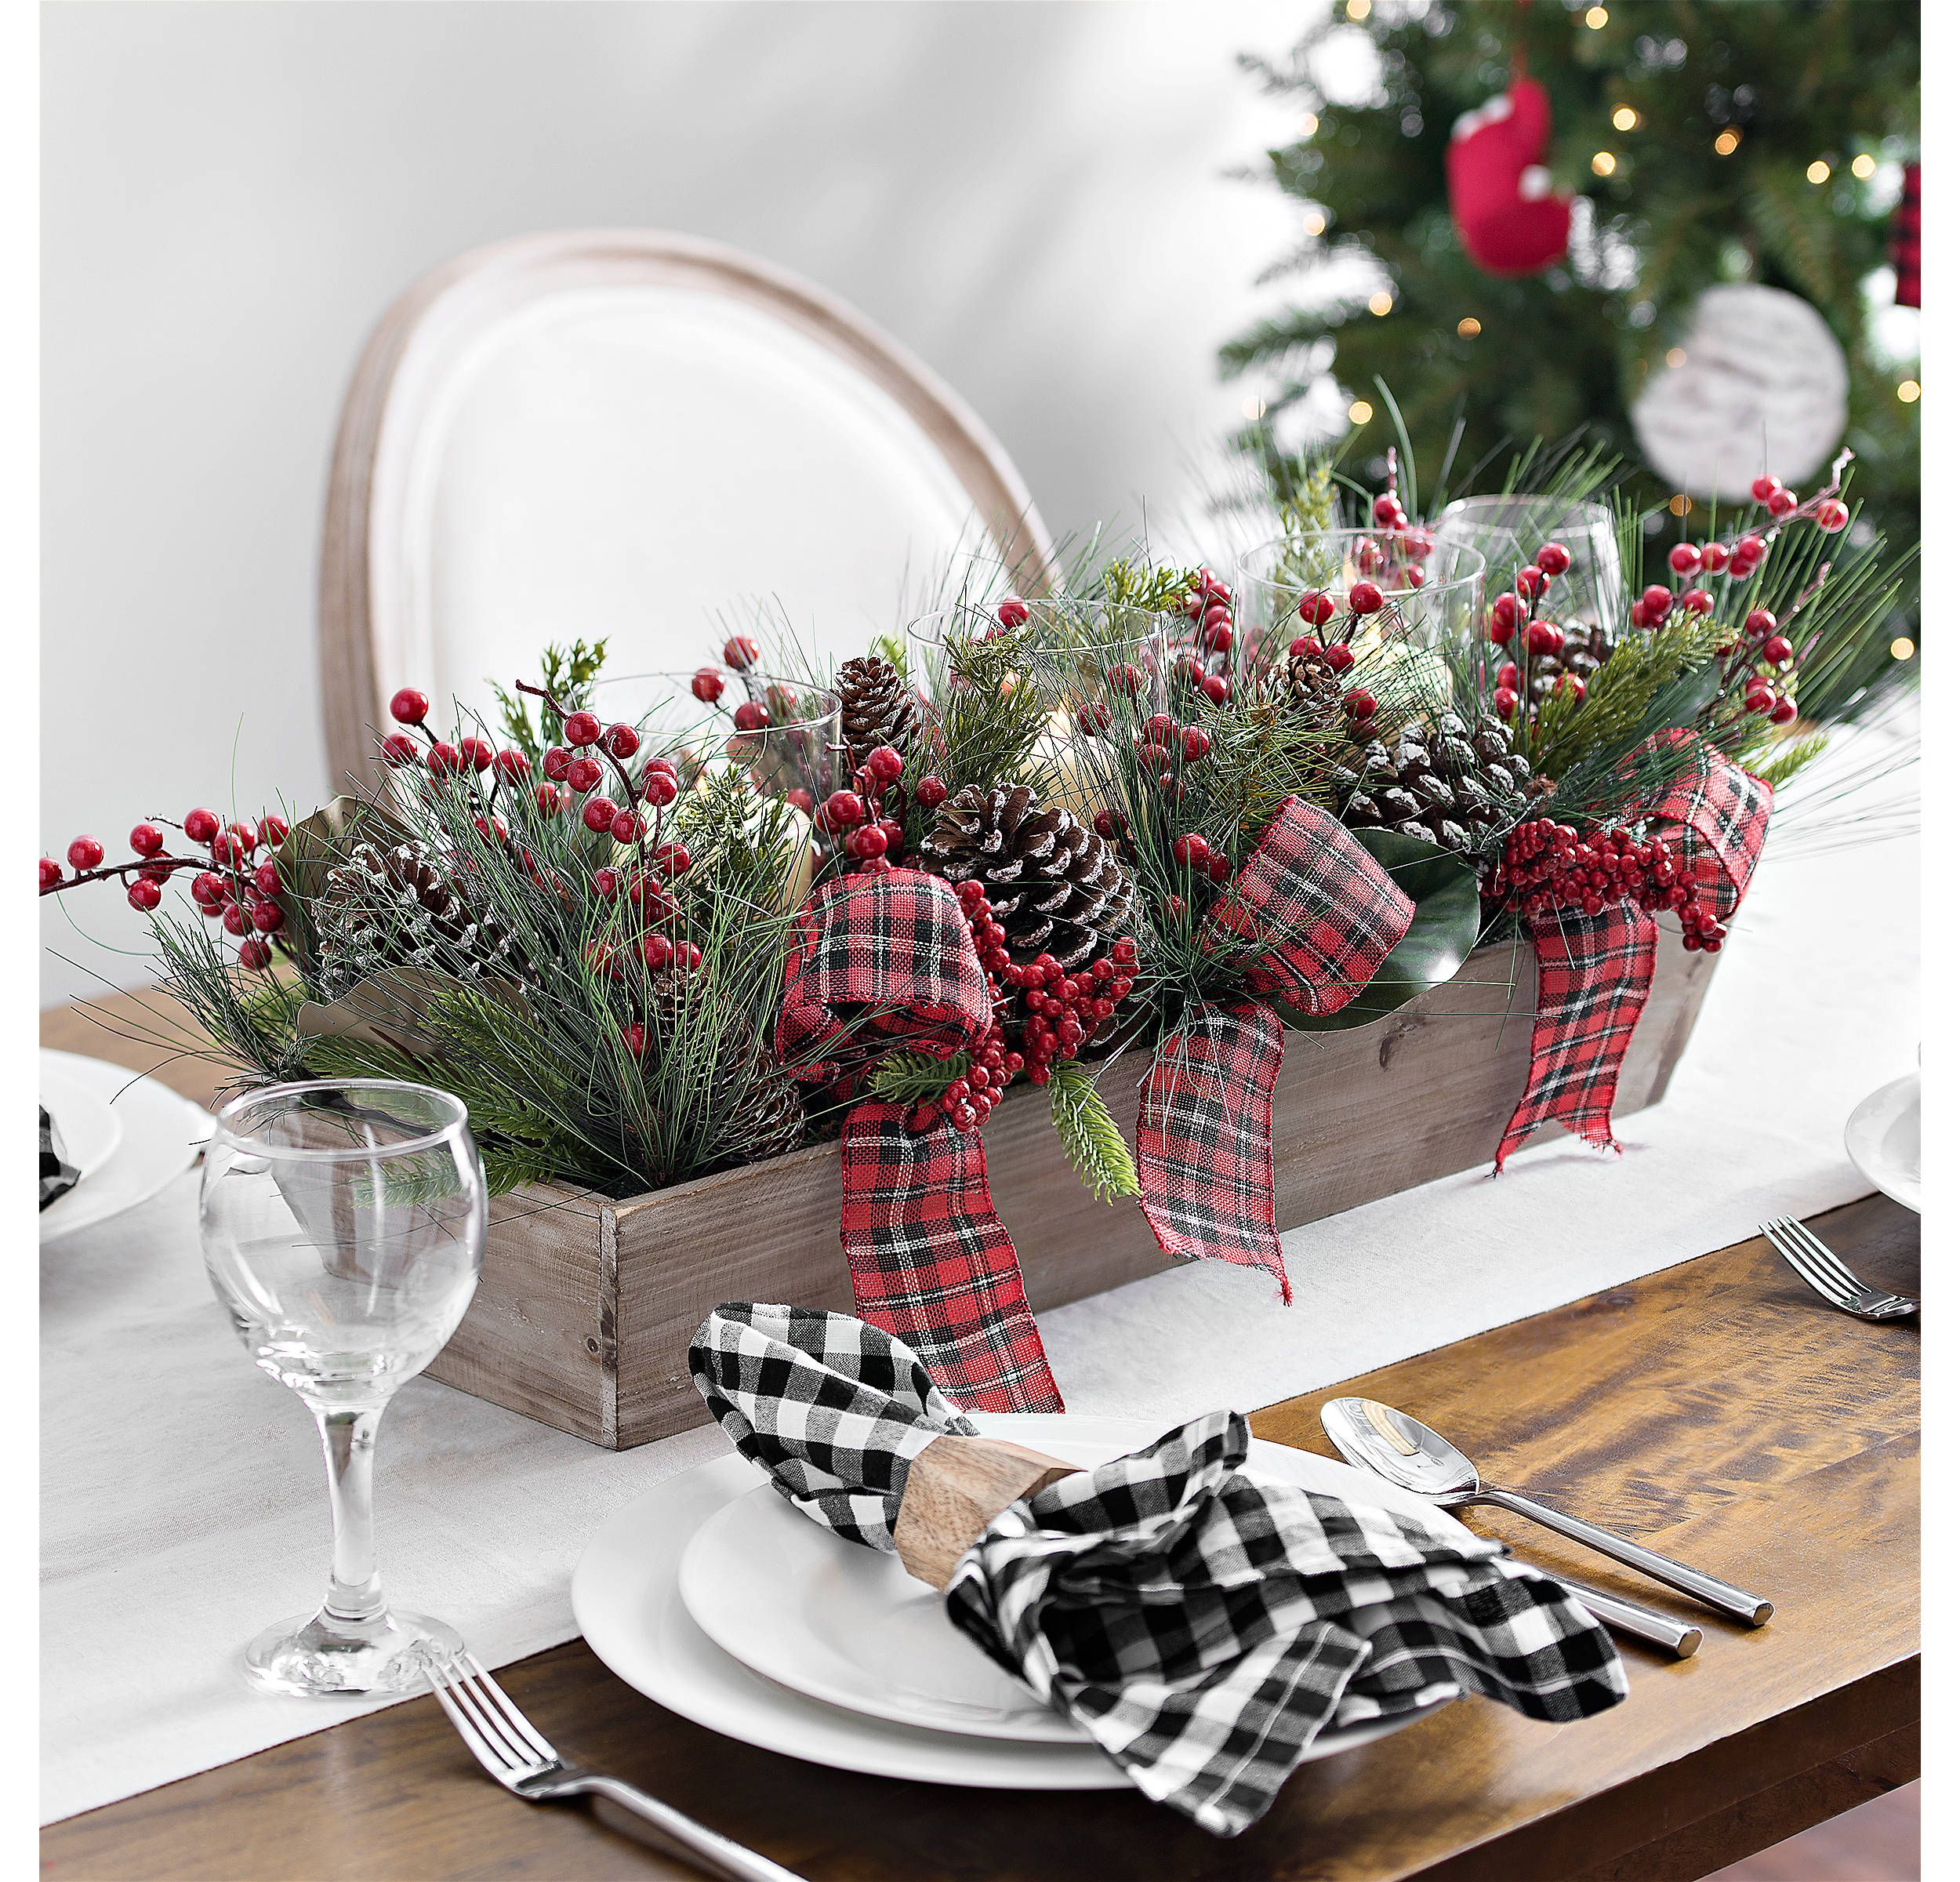 Pine And Plaid Bow Crate Centerpiece Kirklands Christmas Centerpieces Christmas Table Decorations Christmas Table Centerpieces